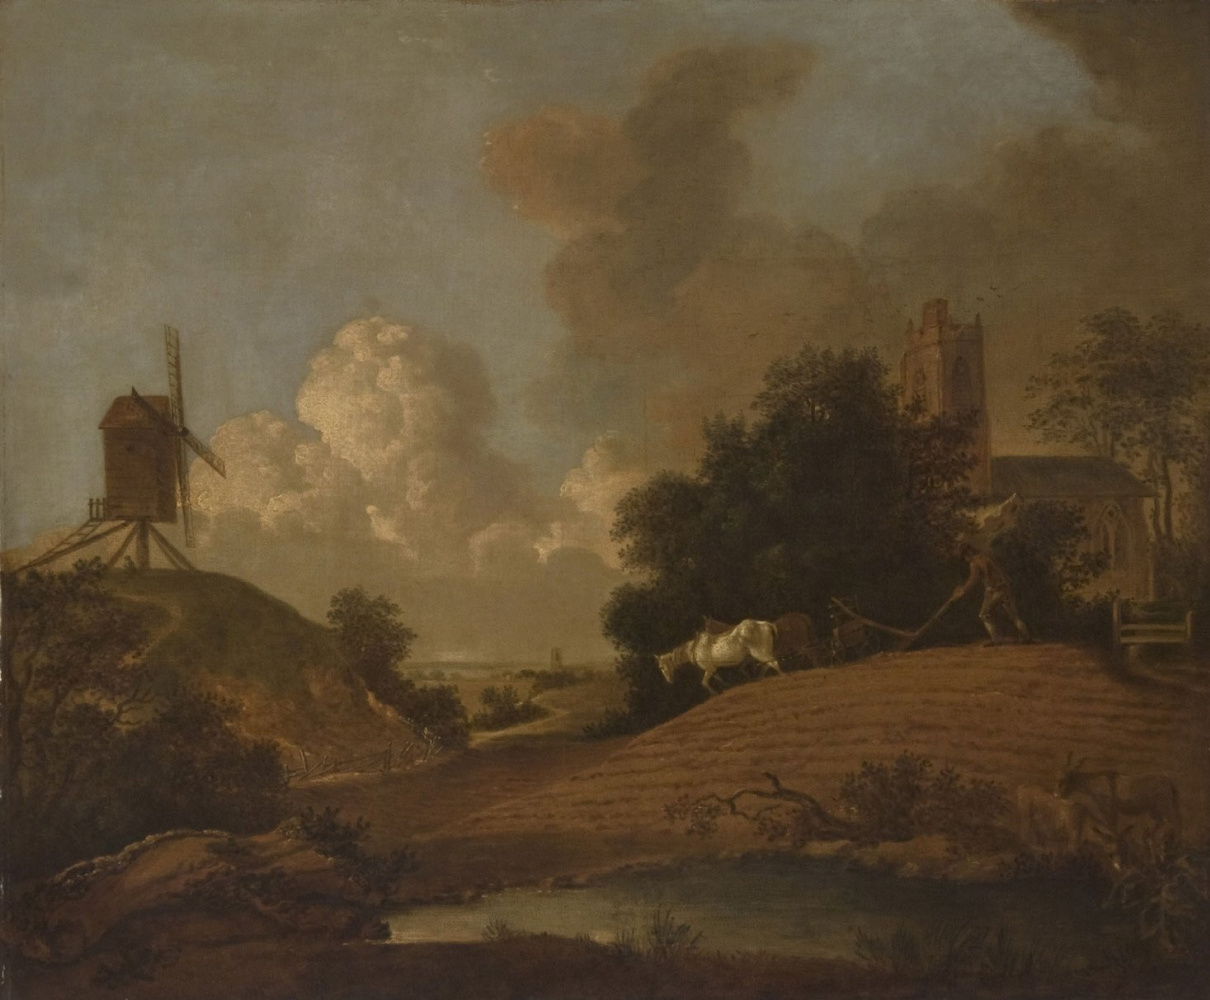 Thomas Gainsborough. Landscape with a windmill